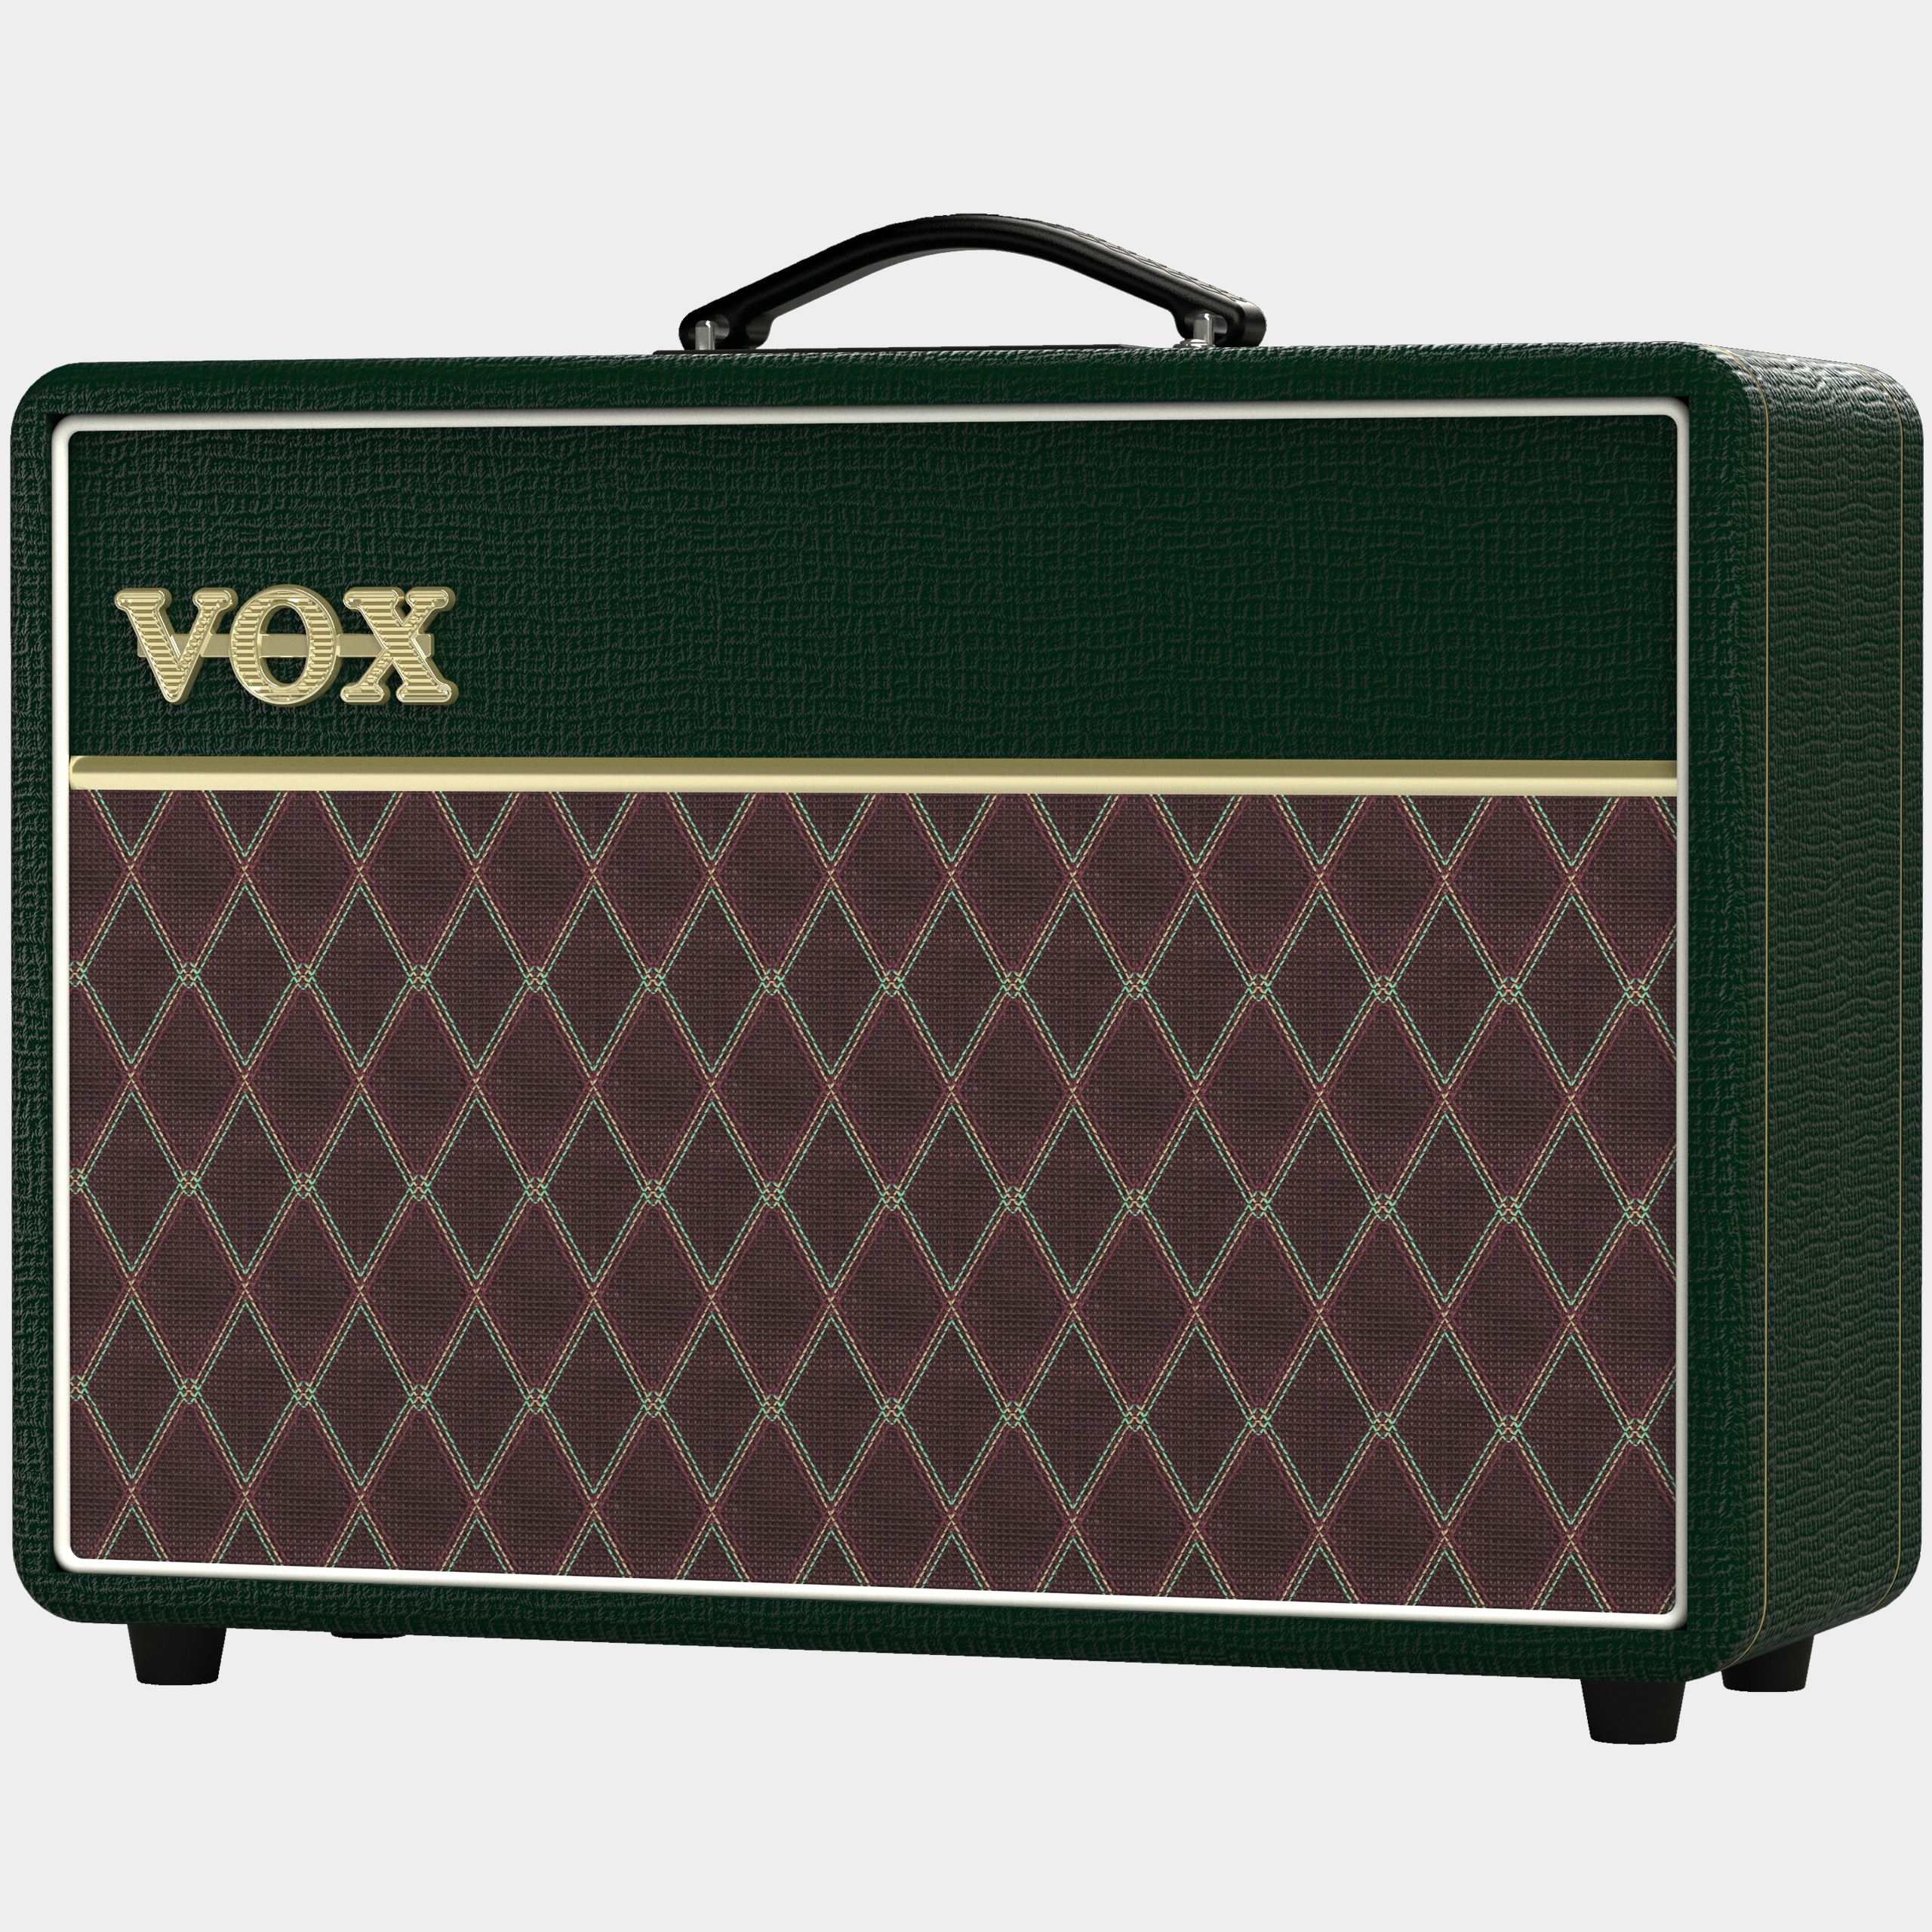 VOX AC10C1 Limited Edition British Racing Green